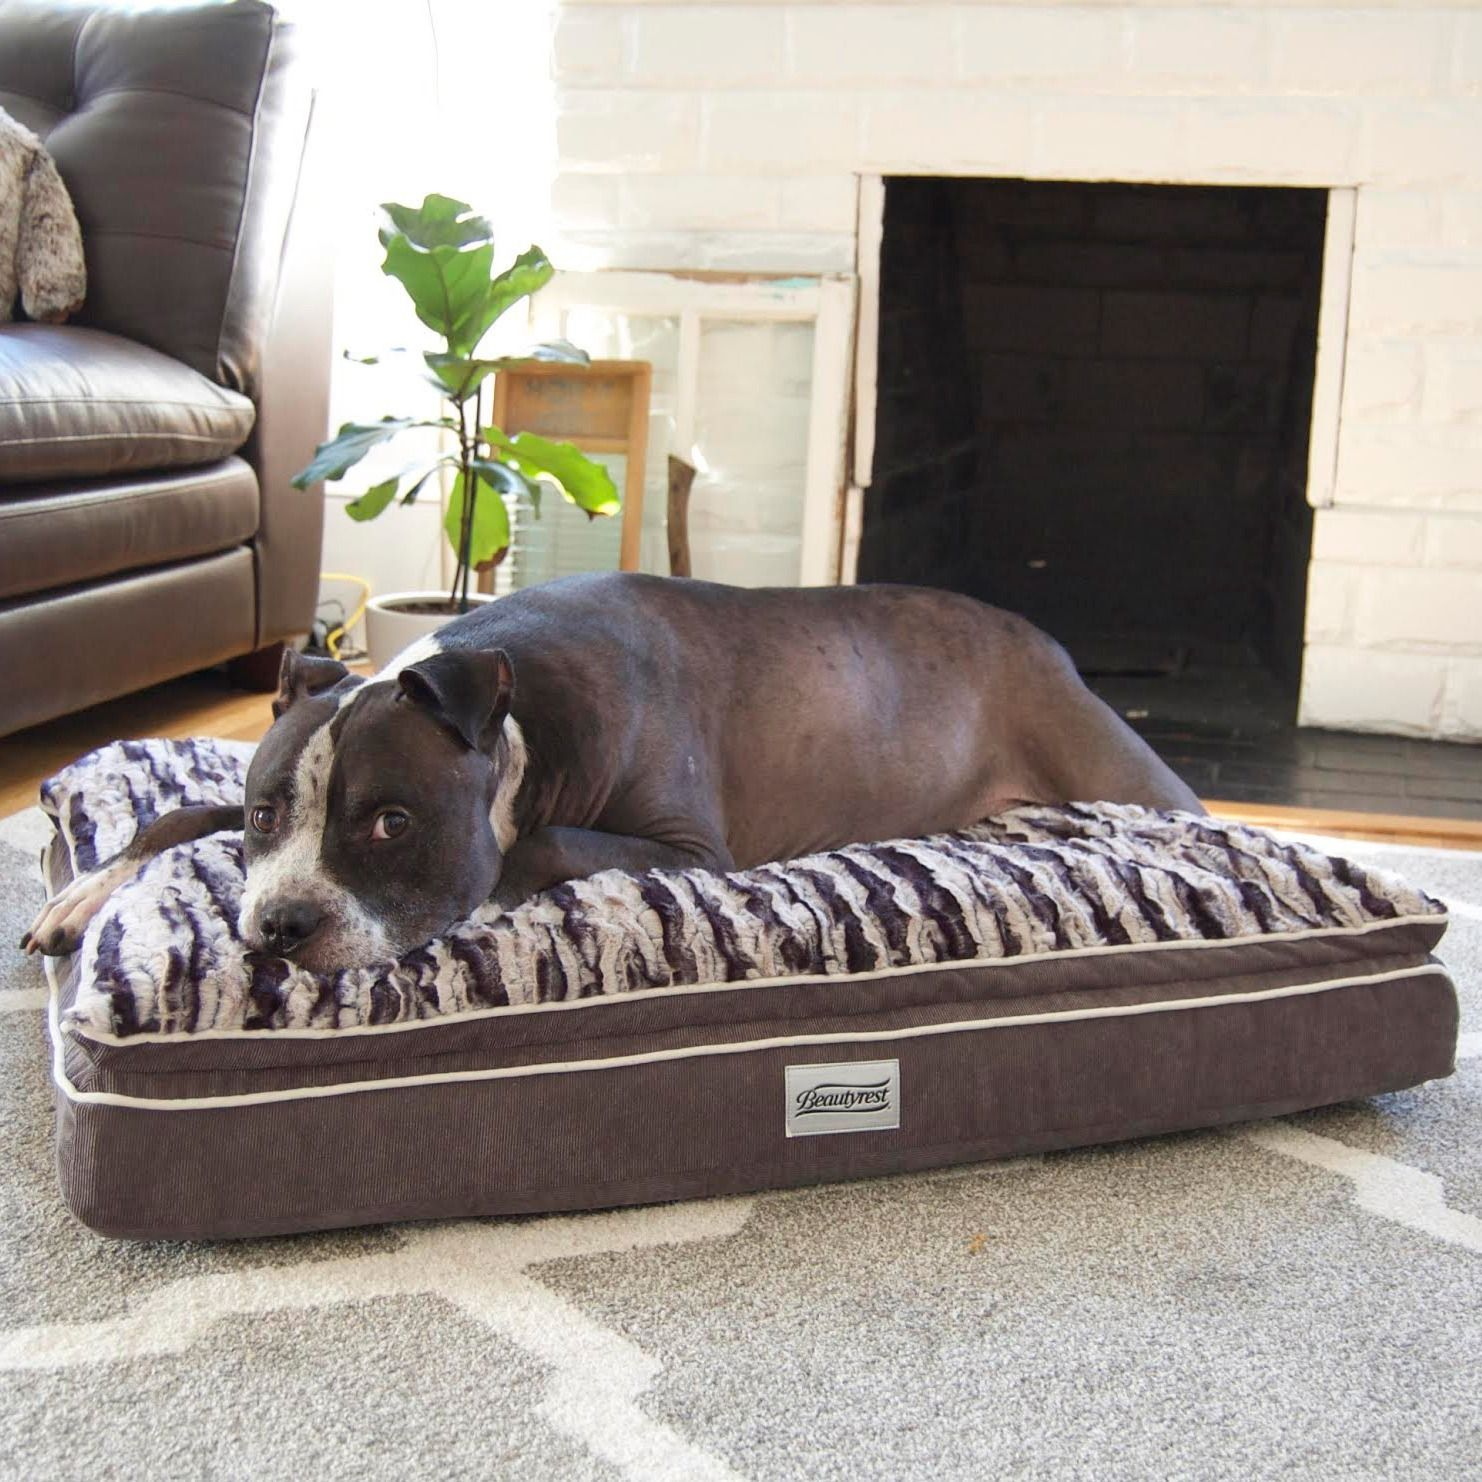 the simmons beautyrest luxe mat plus rectangle dog bed features a